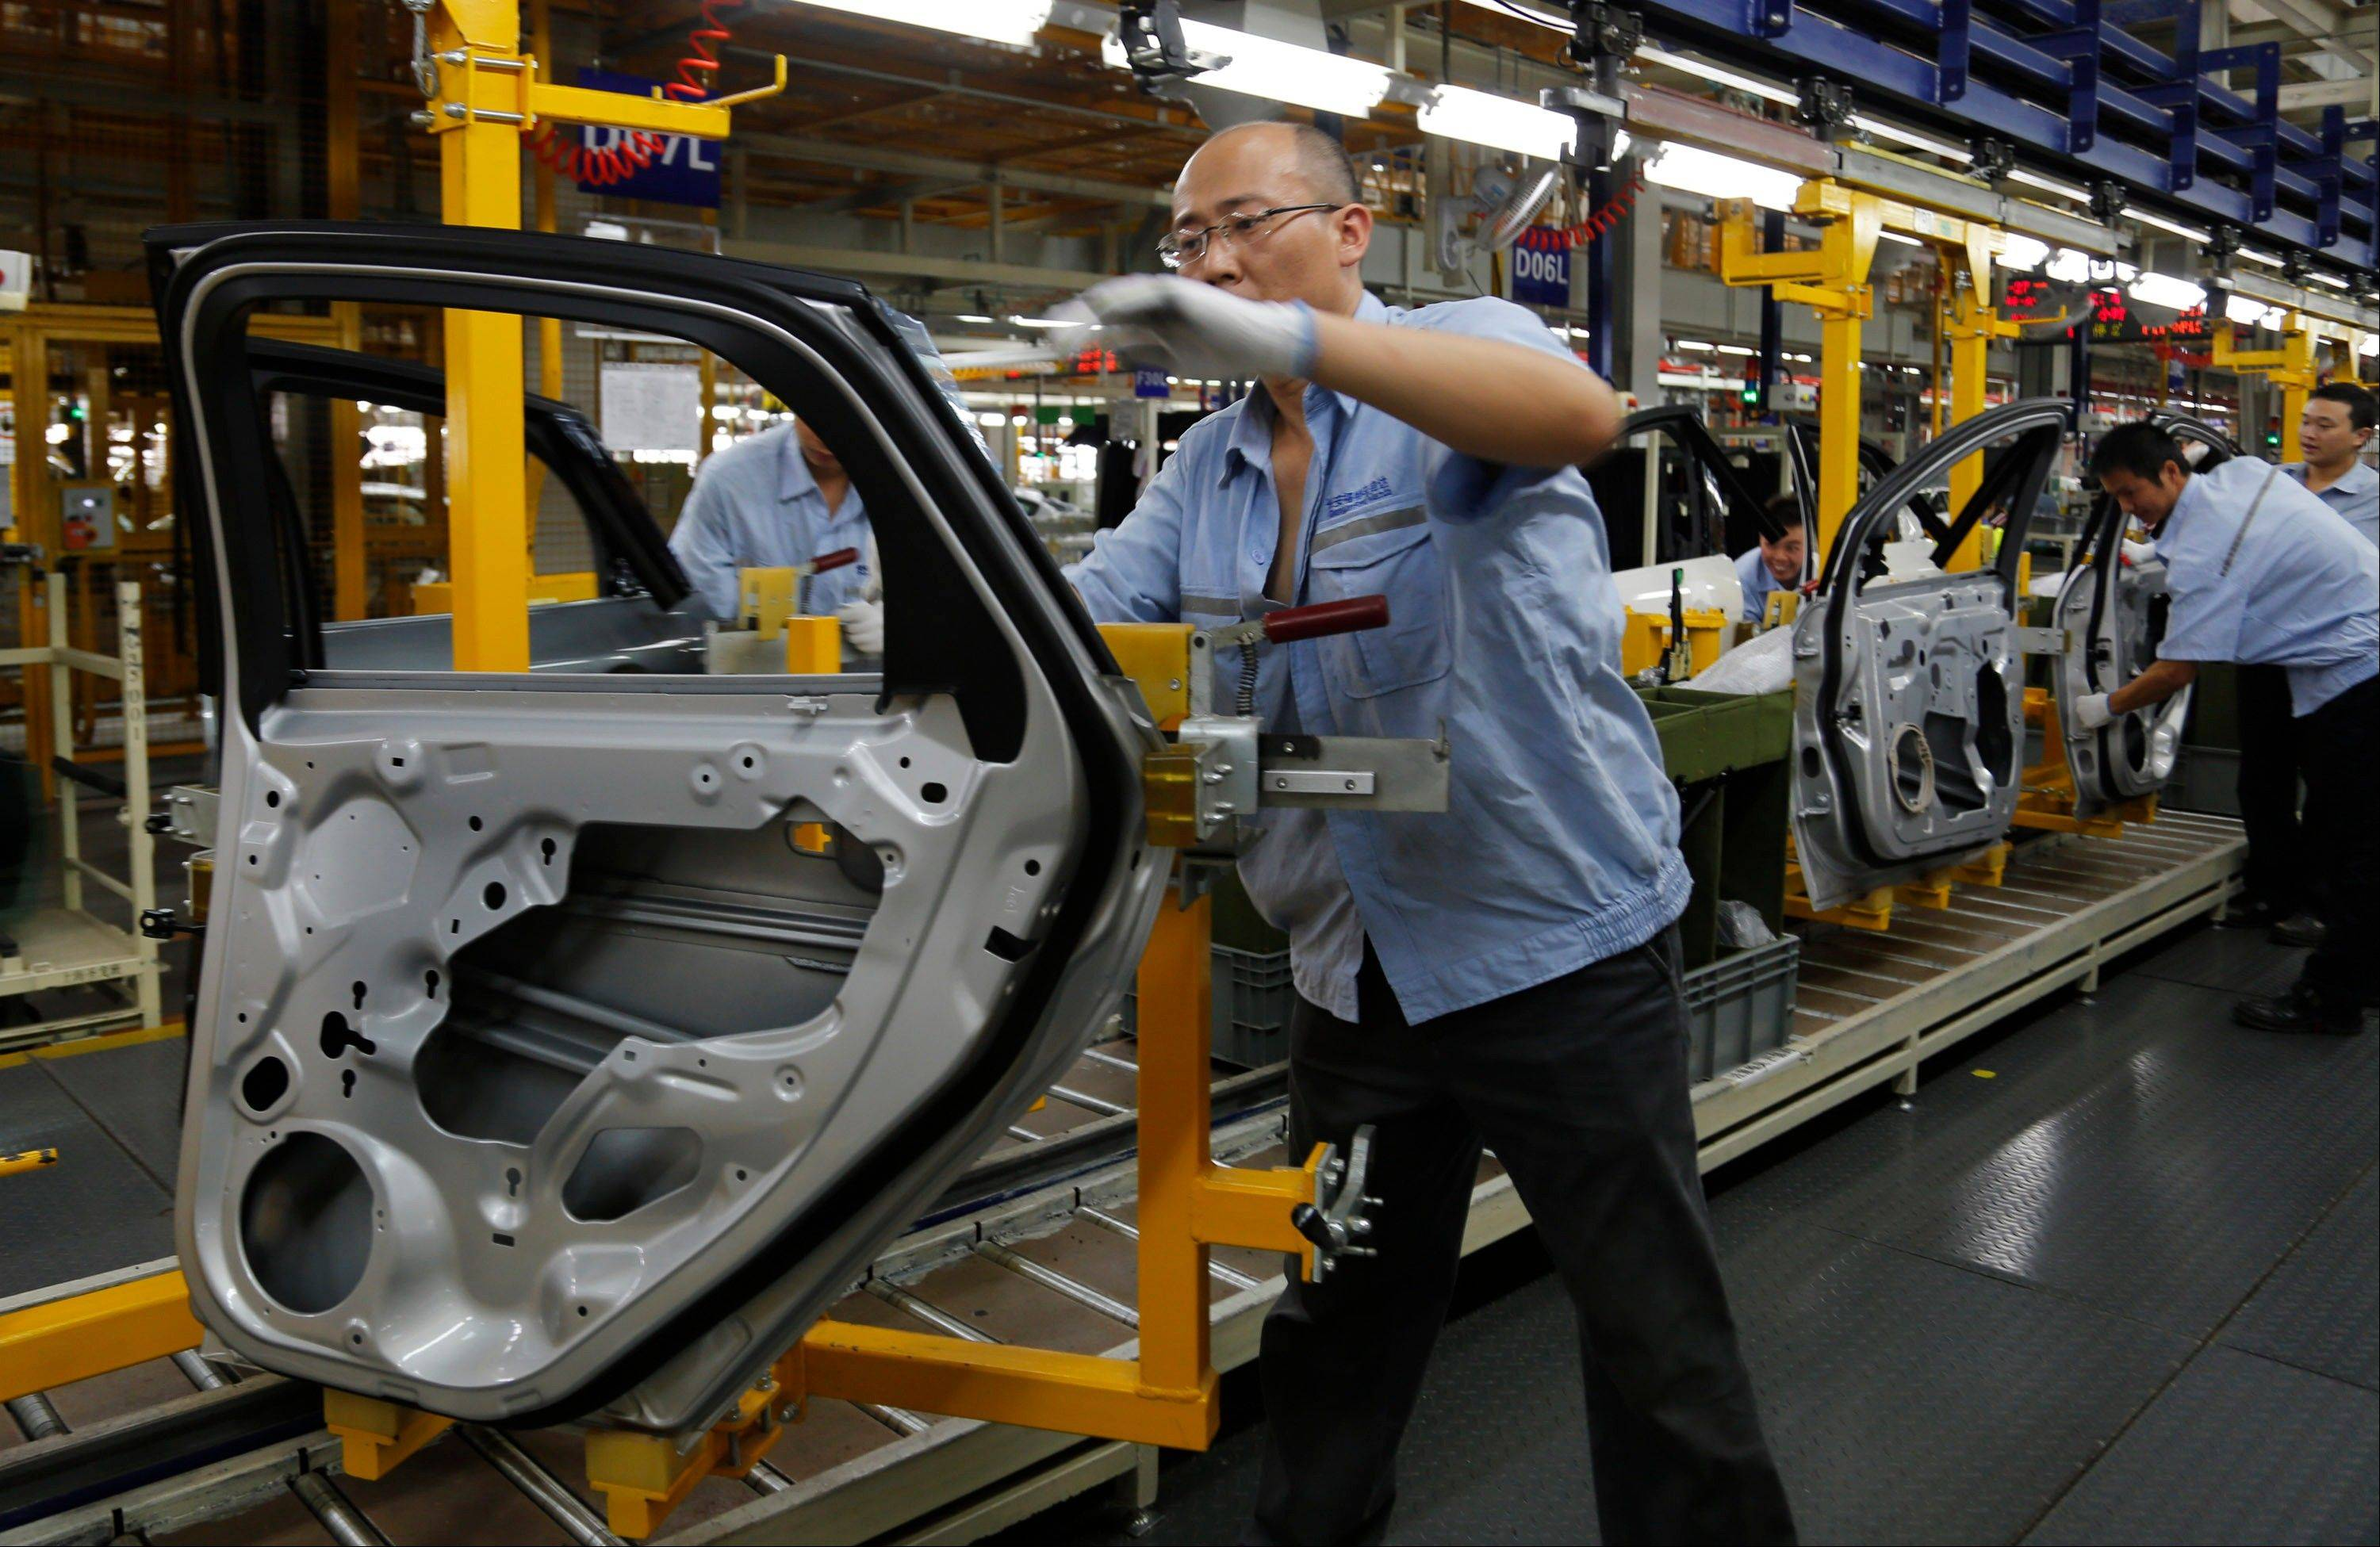 In this Monday, Aug. 27, 2012 photo provided by Ford Motor Co., workers assemble a car at a new Ford/CFMA Chongqing Plant after its launching ceremony in Chongqing, China. Ford aims to increase its share of the market as more Chinese consumers buy vehicles.